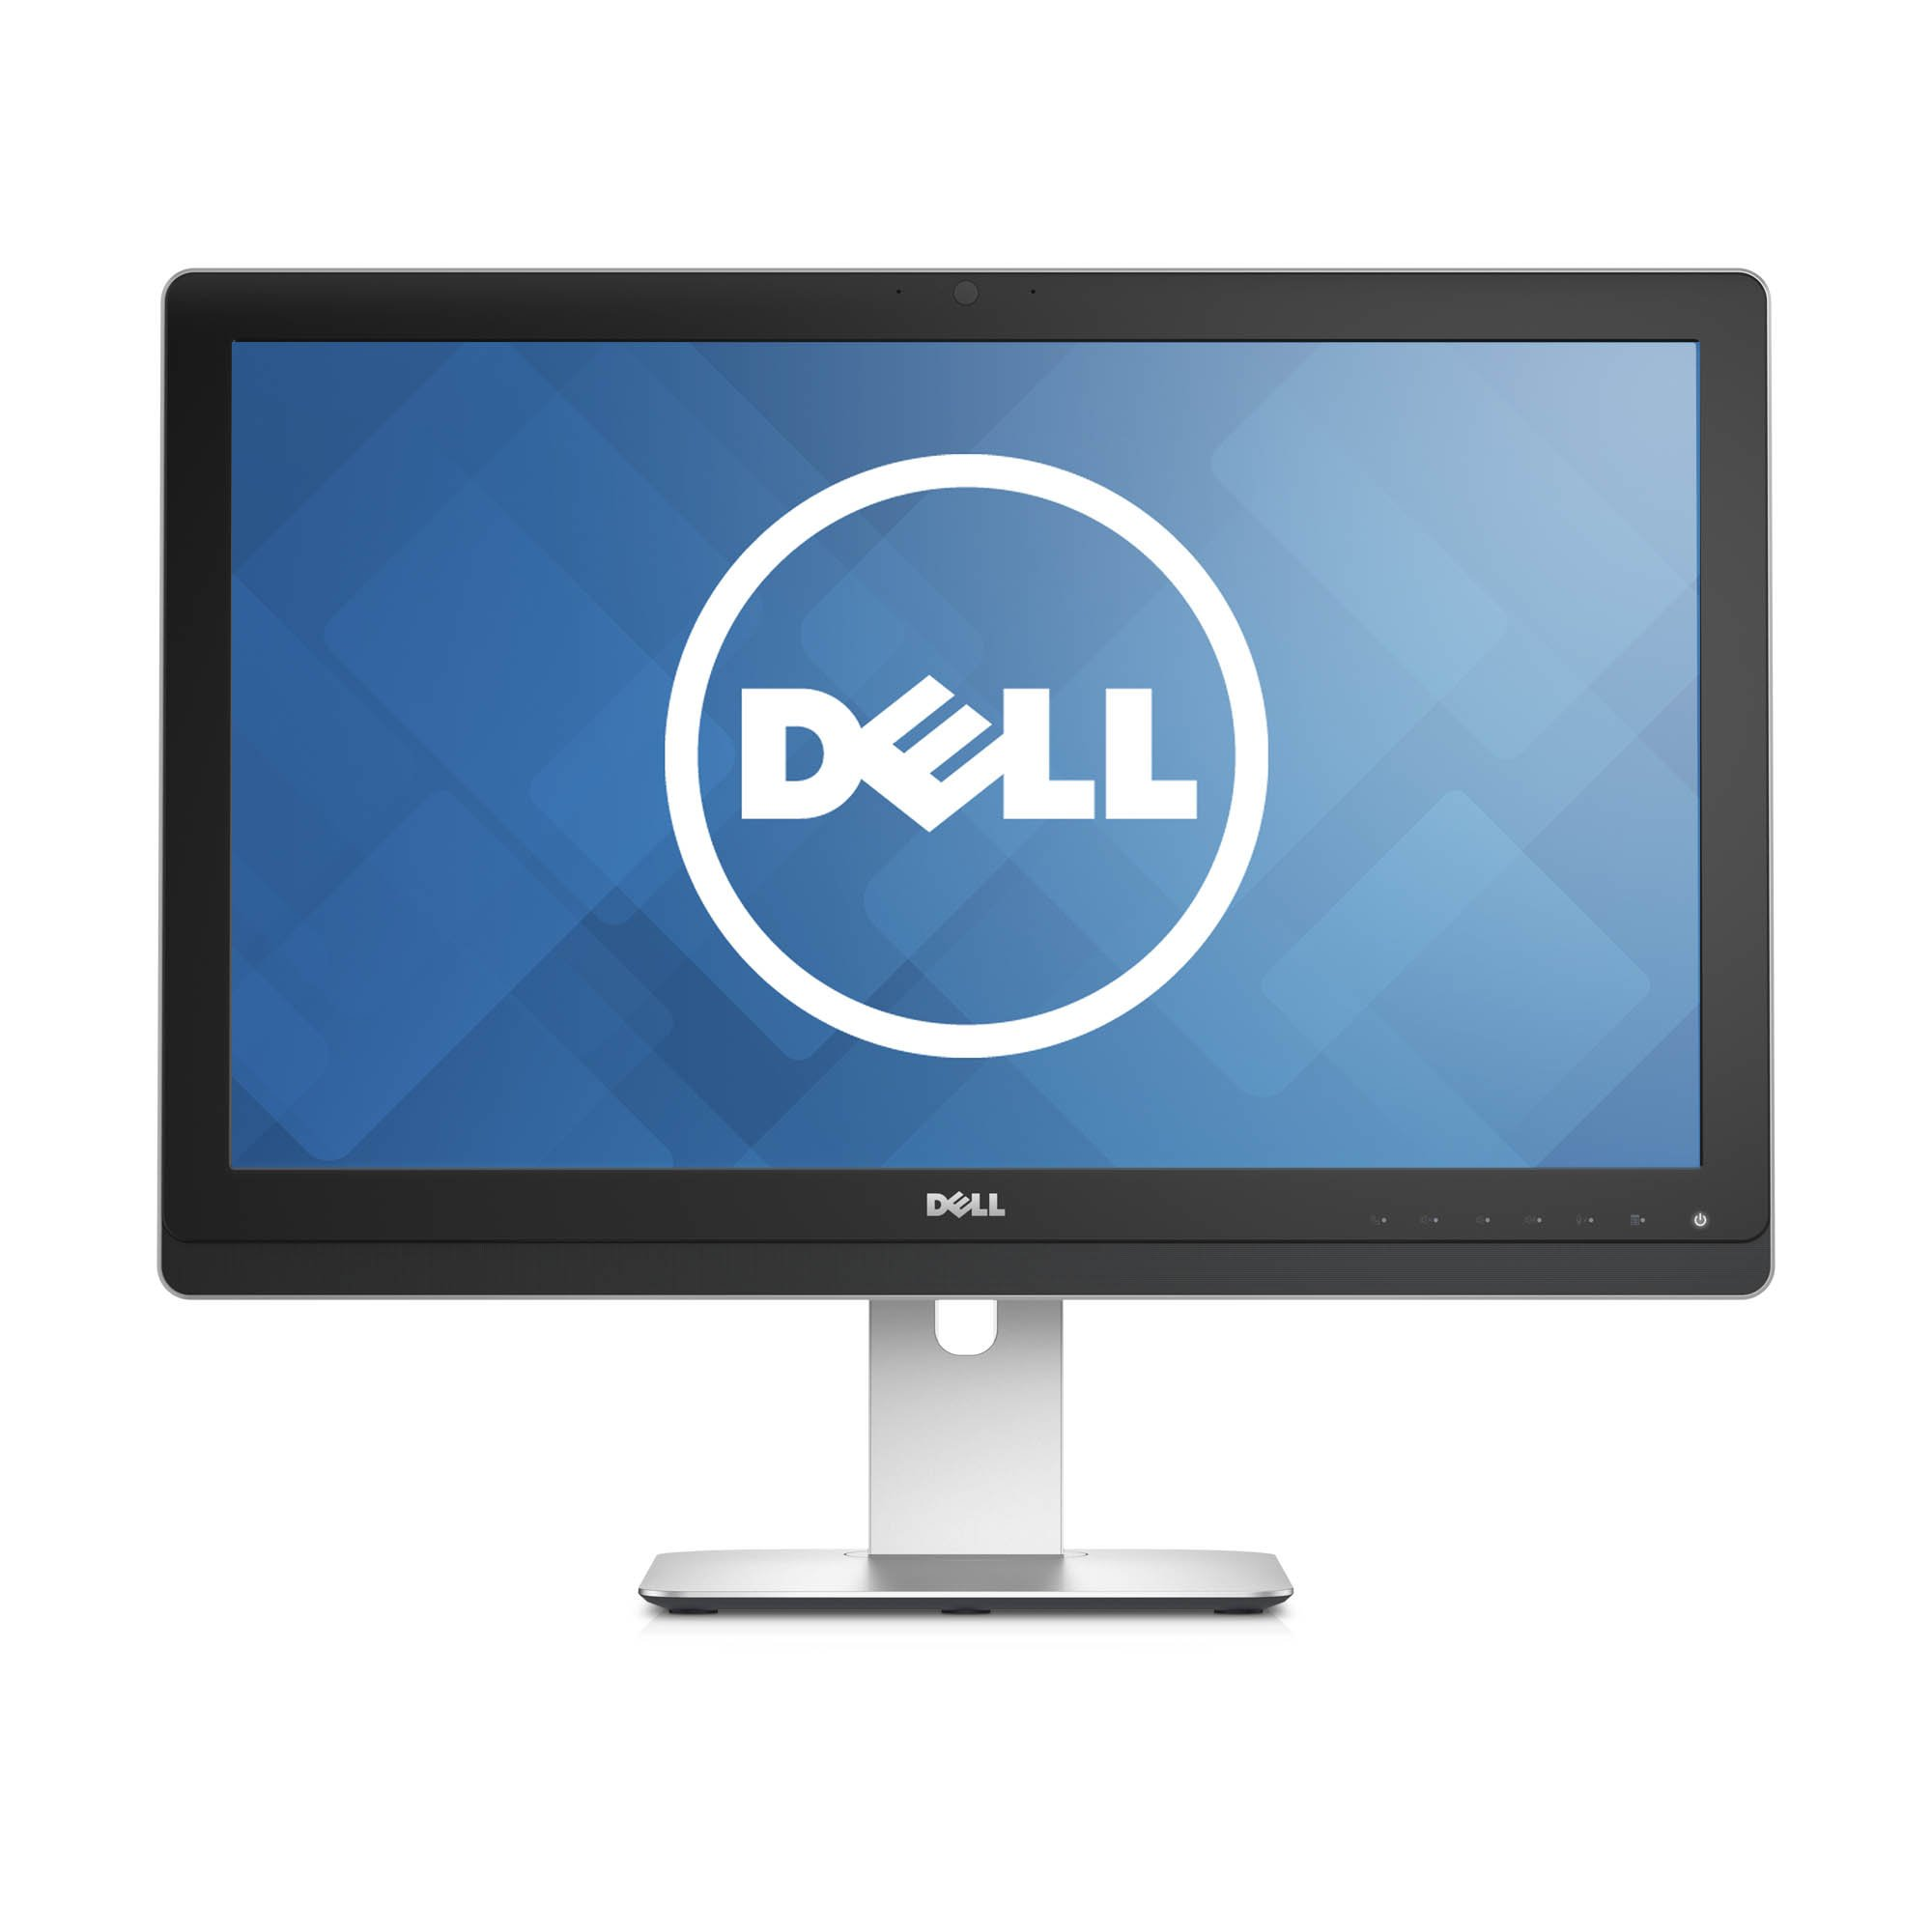 Dell Ultrasharp UZ2315H 23-Inch Screen LED-Lit Full HD Monitor with Webcam and Speakers by Dell (Image #19)